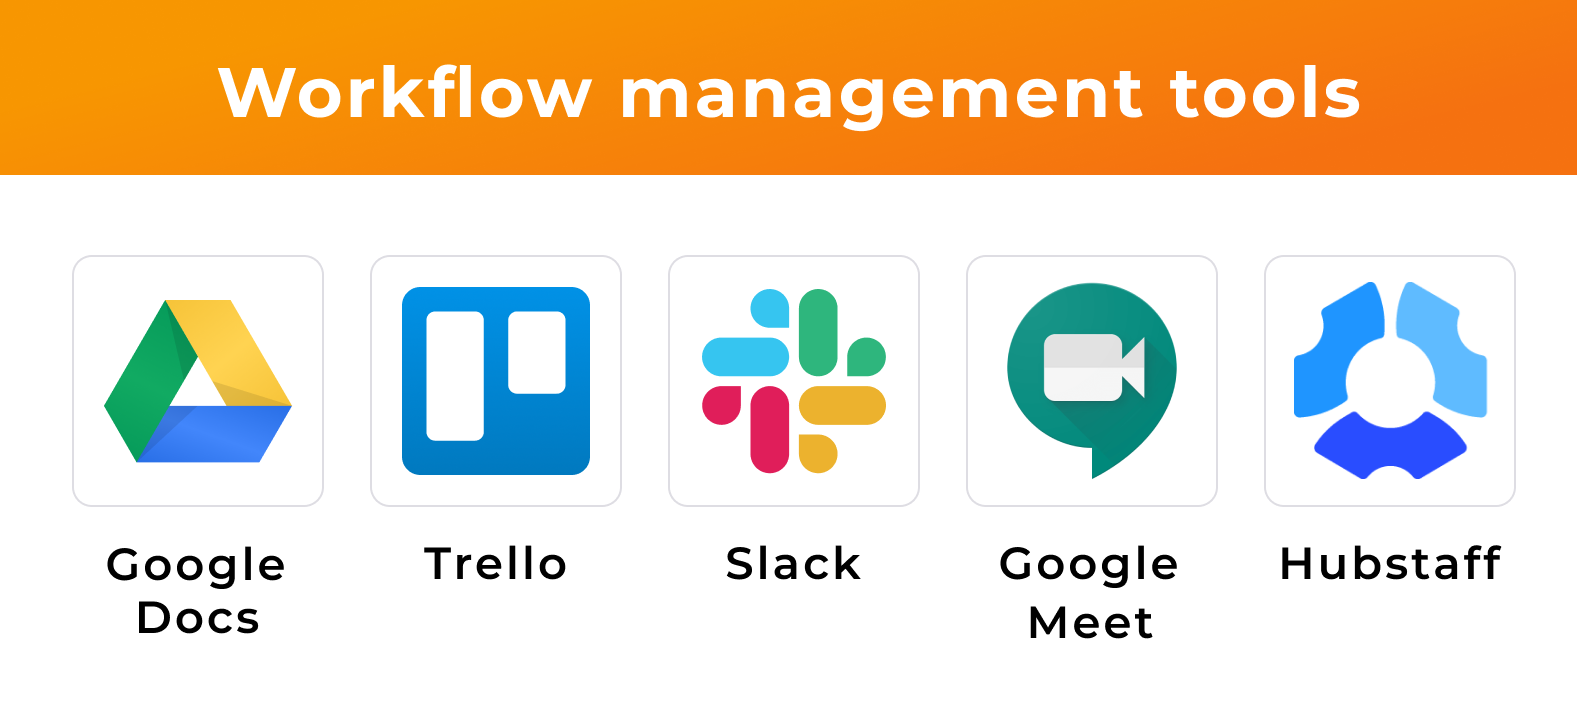 Workflow management tools for software development